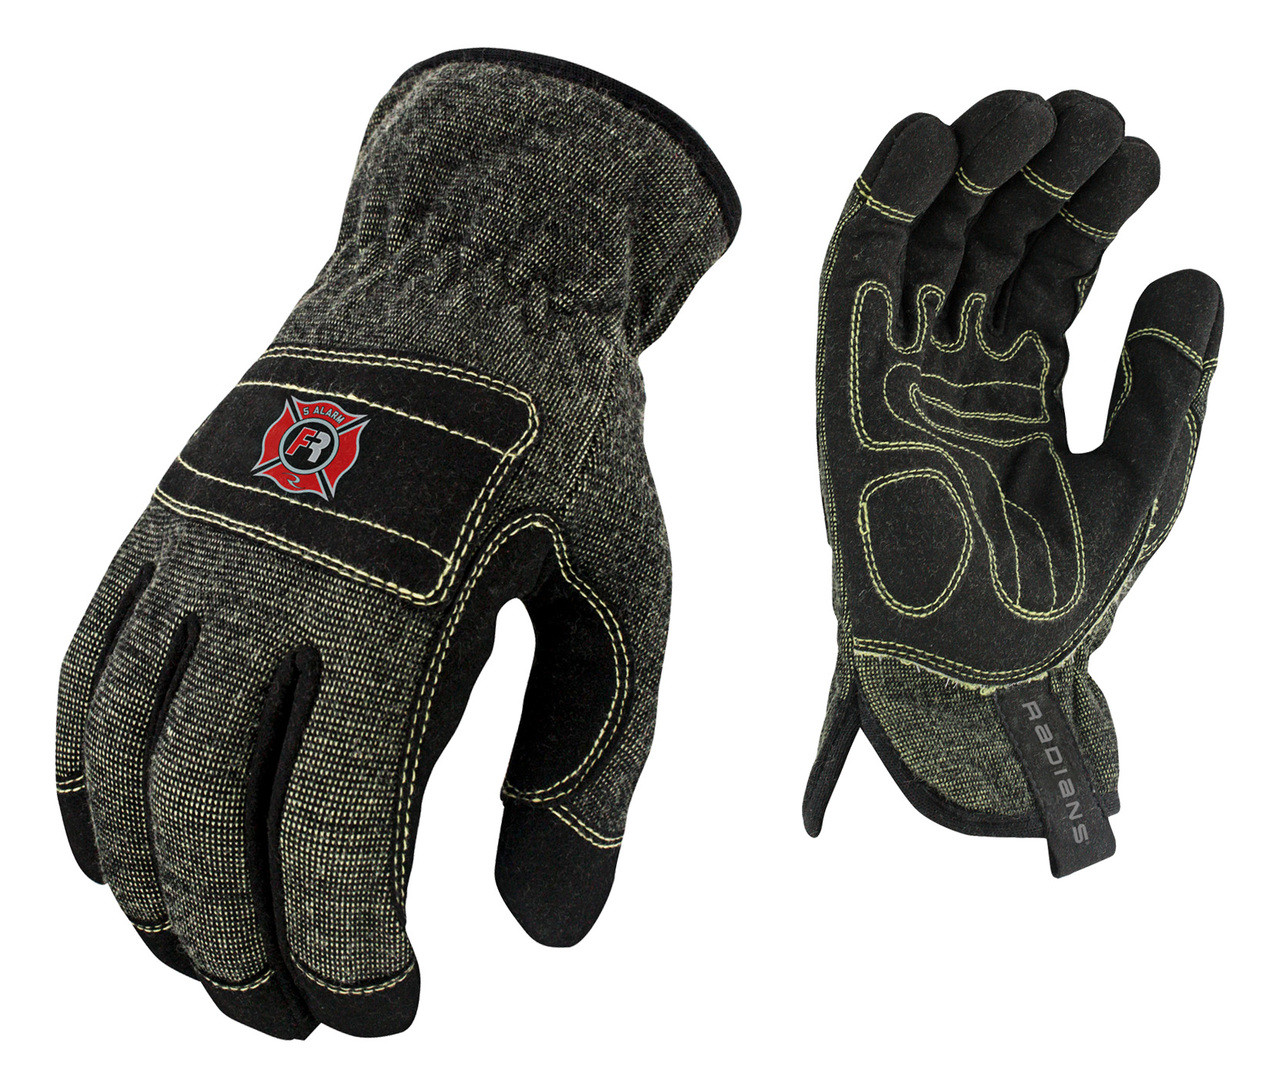 FR-RWG Work Glove